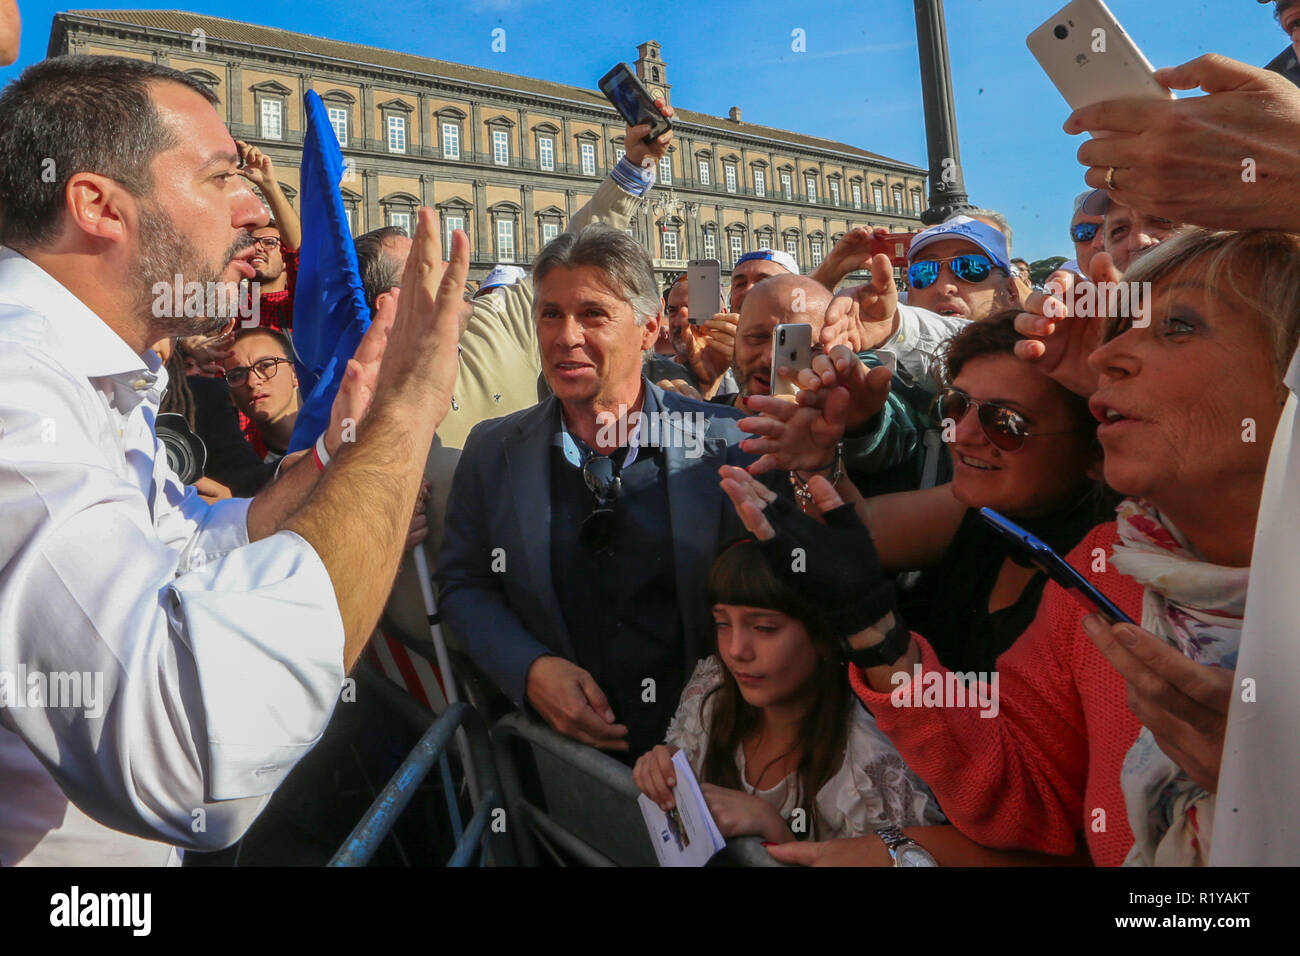 Plebiscito Place,Napoli, Campania, Italy, 15-11-18, Interior Minister Salvini leaves the summit in the prefecture, greets his supporters outside with selfies and handshakes - Stock Image